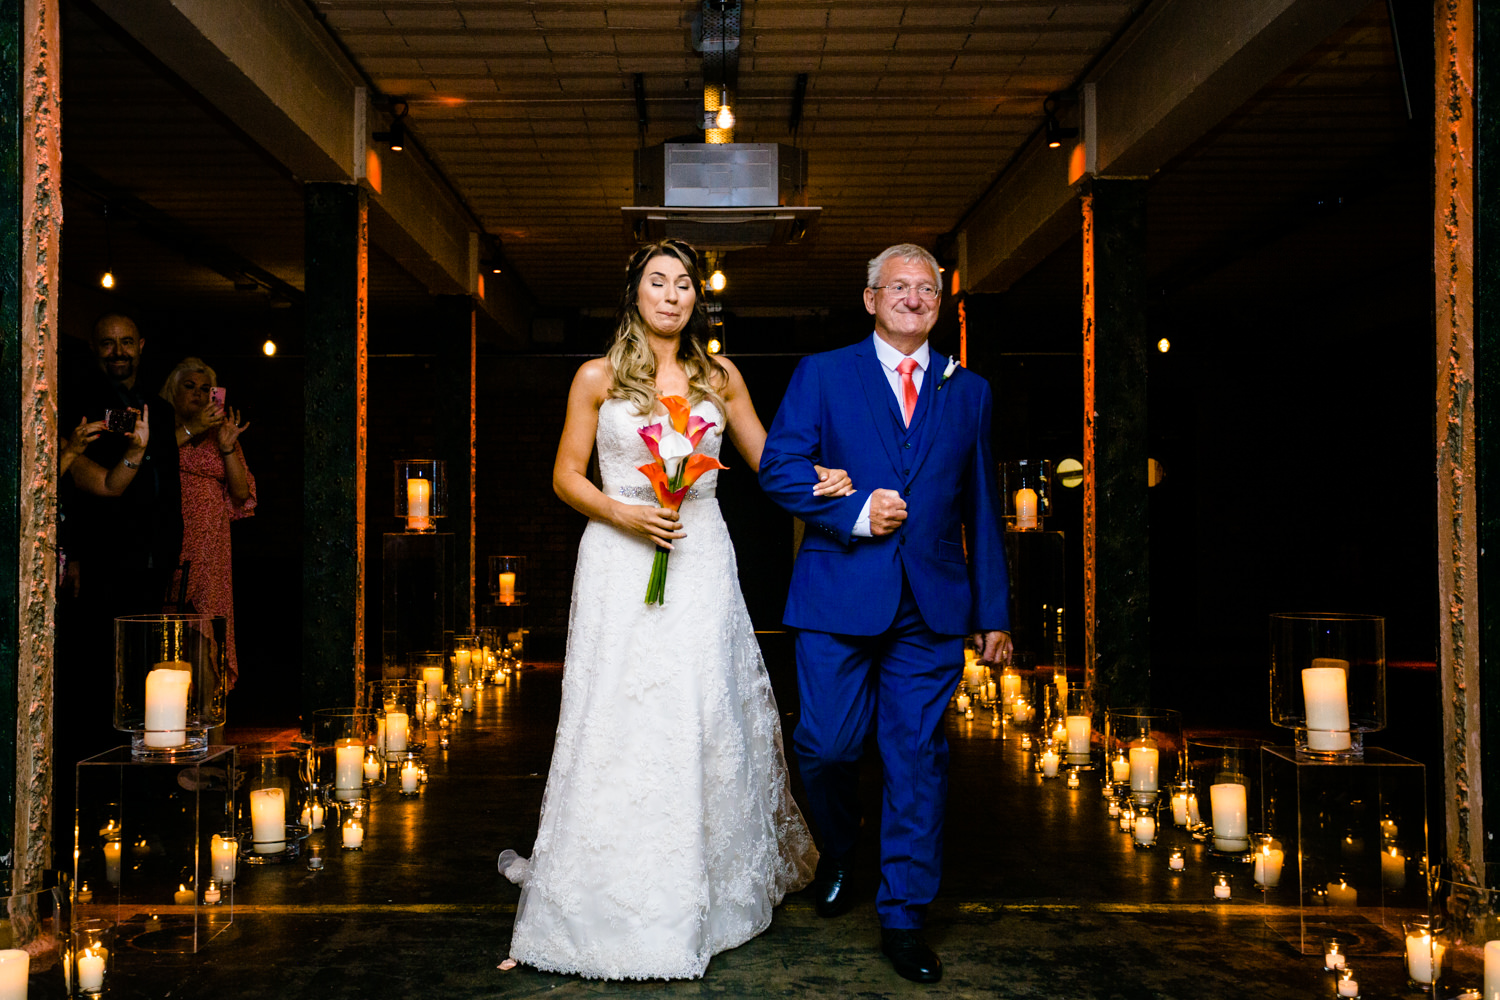 An emotional bride walking down the aisle at Victoria Warehouse	wedding photography